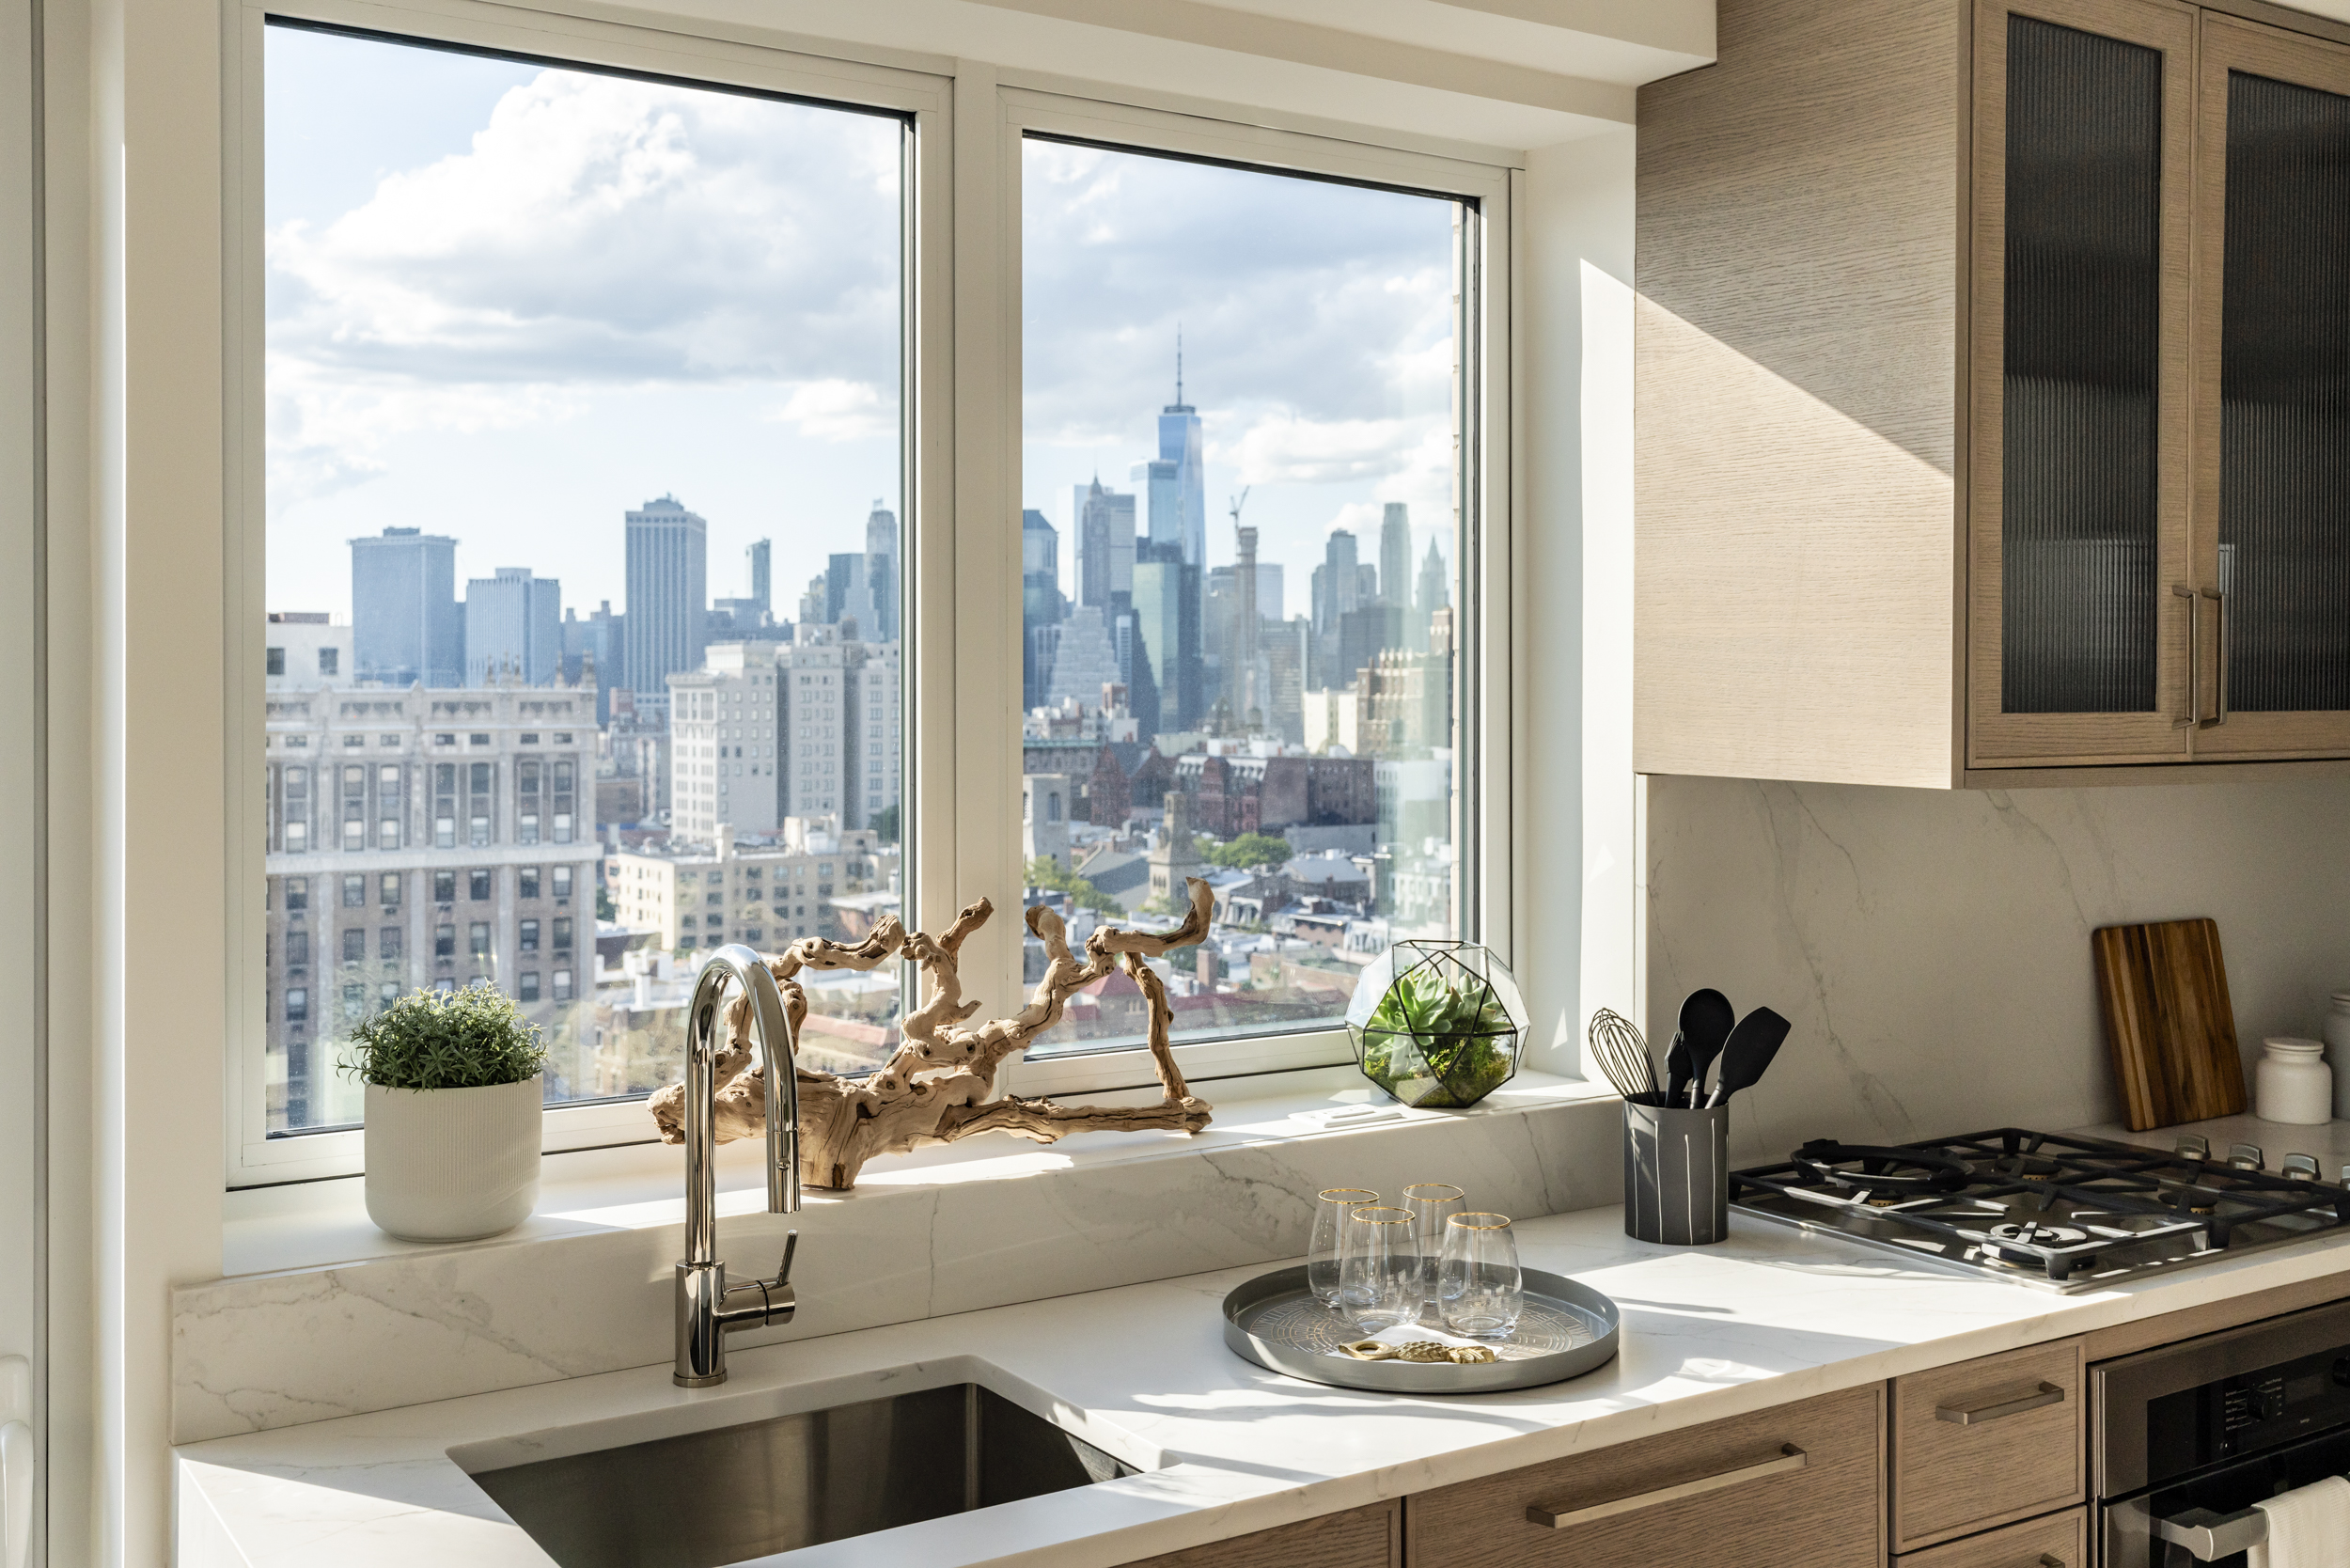 ELEGANTLY MODERN BROOKLYN HEIGHTS CONDO - PROJECT TYPE: ResidentialLOCATION: Brooklyn, NYARCHITECT & INTERIOR DESIGN: Cetra RuddySTRATEGY: Market Intelligence, Branding & Positioning, NamingDESIGN: Art Direction, Graphic Design, Digital Development, Interior DesignIMPLEMENTATION: Brand Identity, Stationery Suite, Ad Campaigns, Promotional Collateral, Floor Plans, Site Signage, Website, Model Unit Design